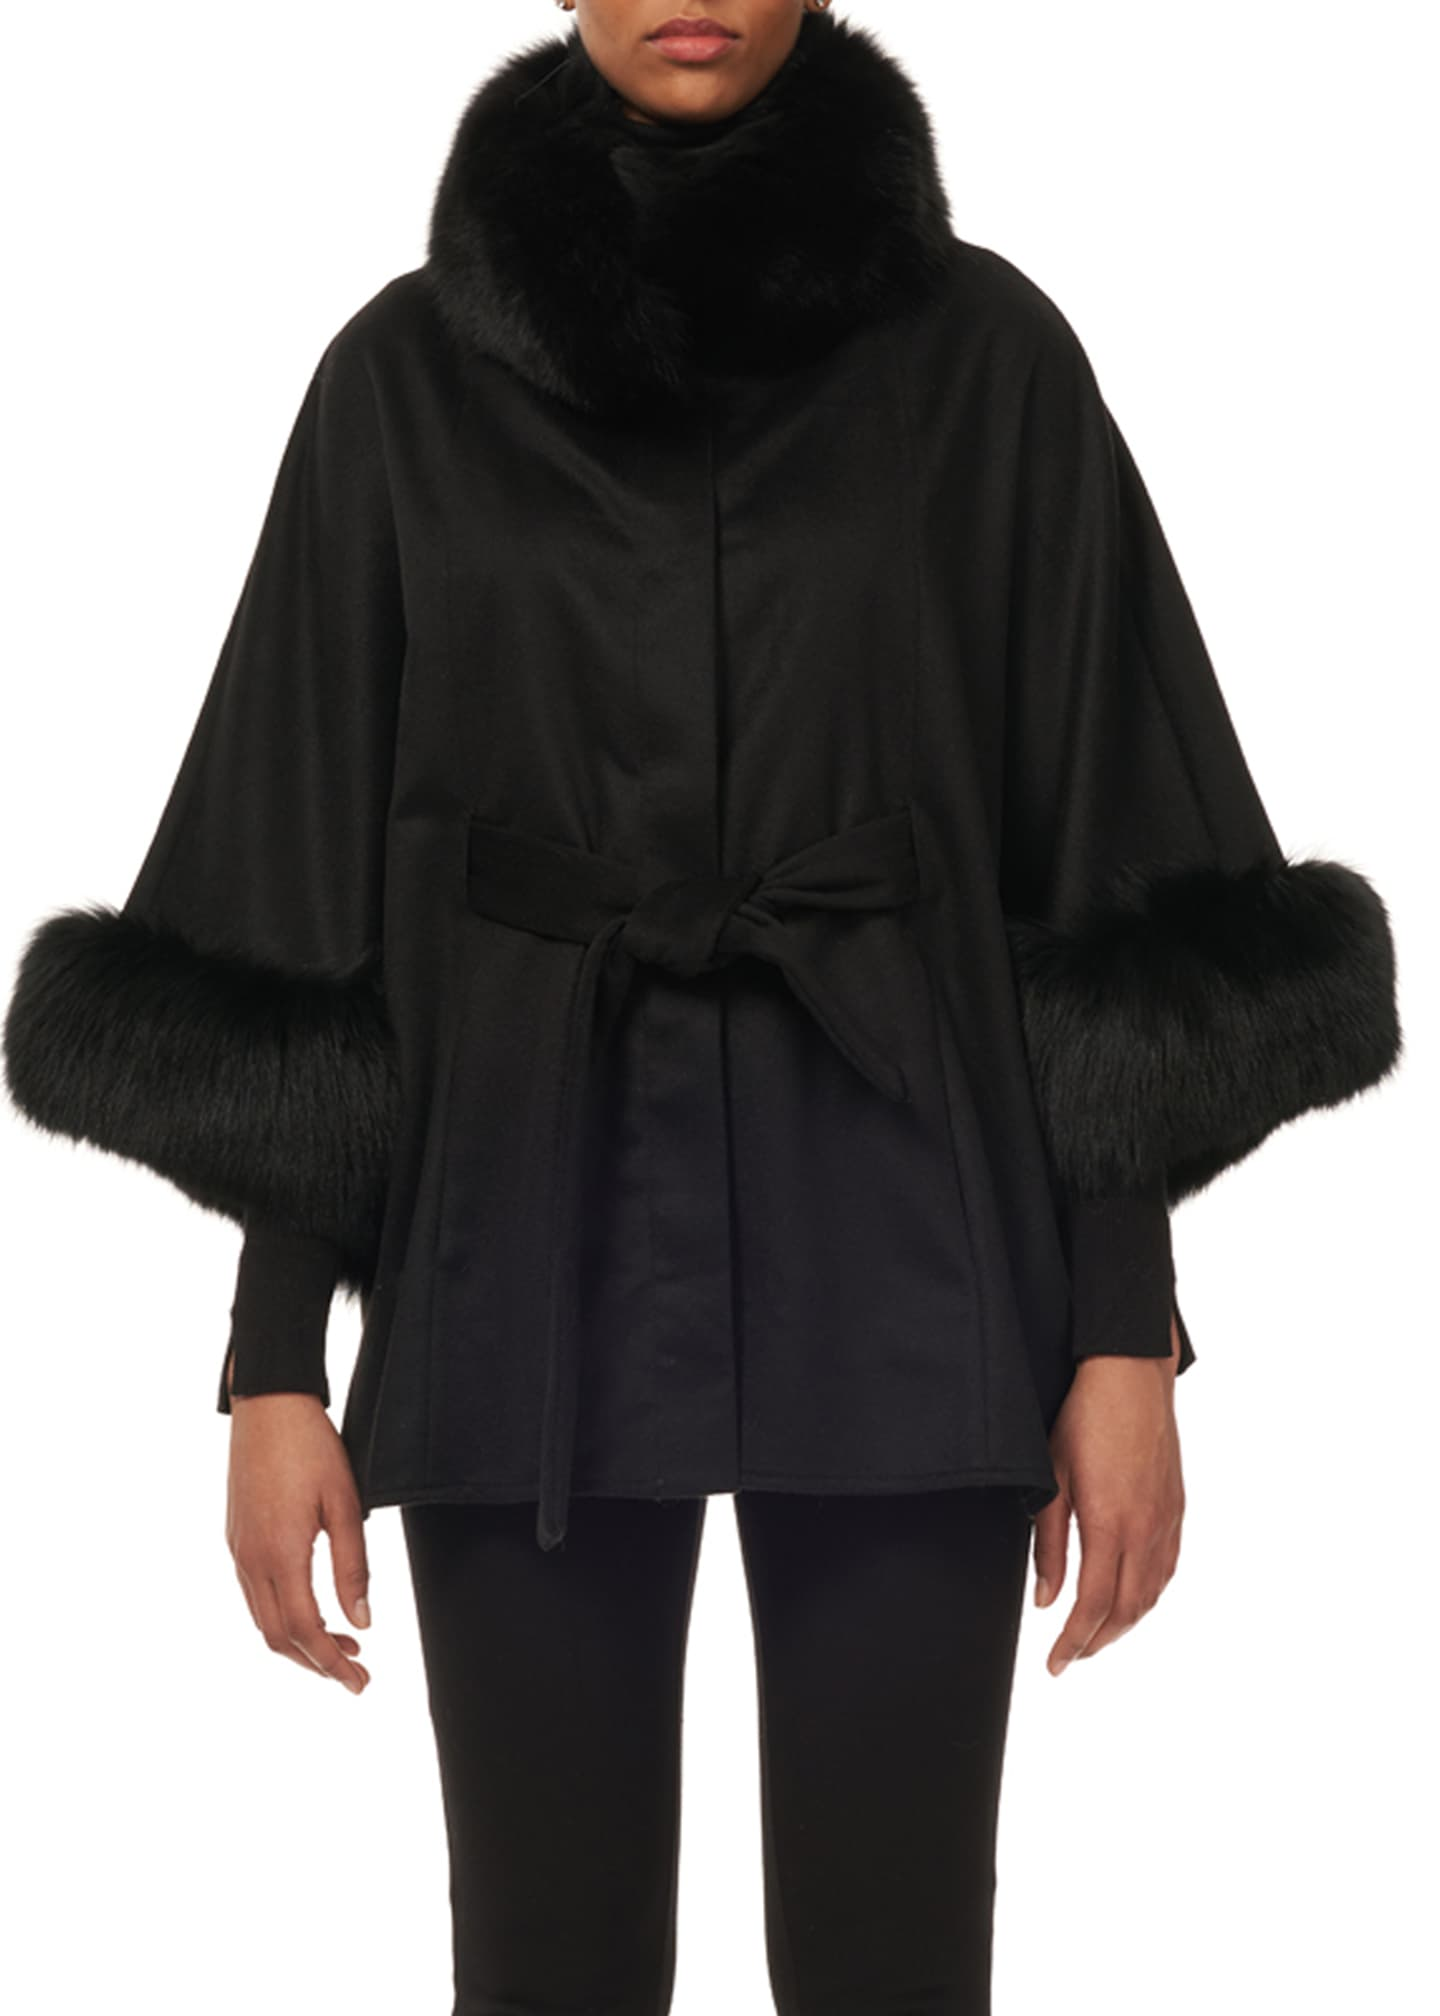 Gorski Cashmere Belted Cape w/ Fur Collar &